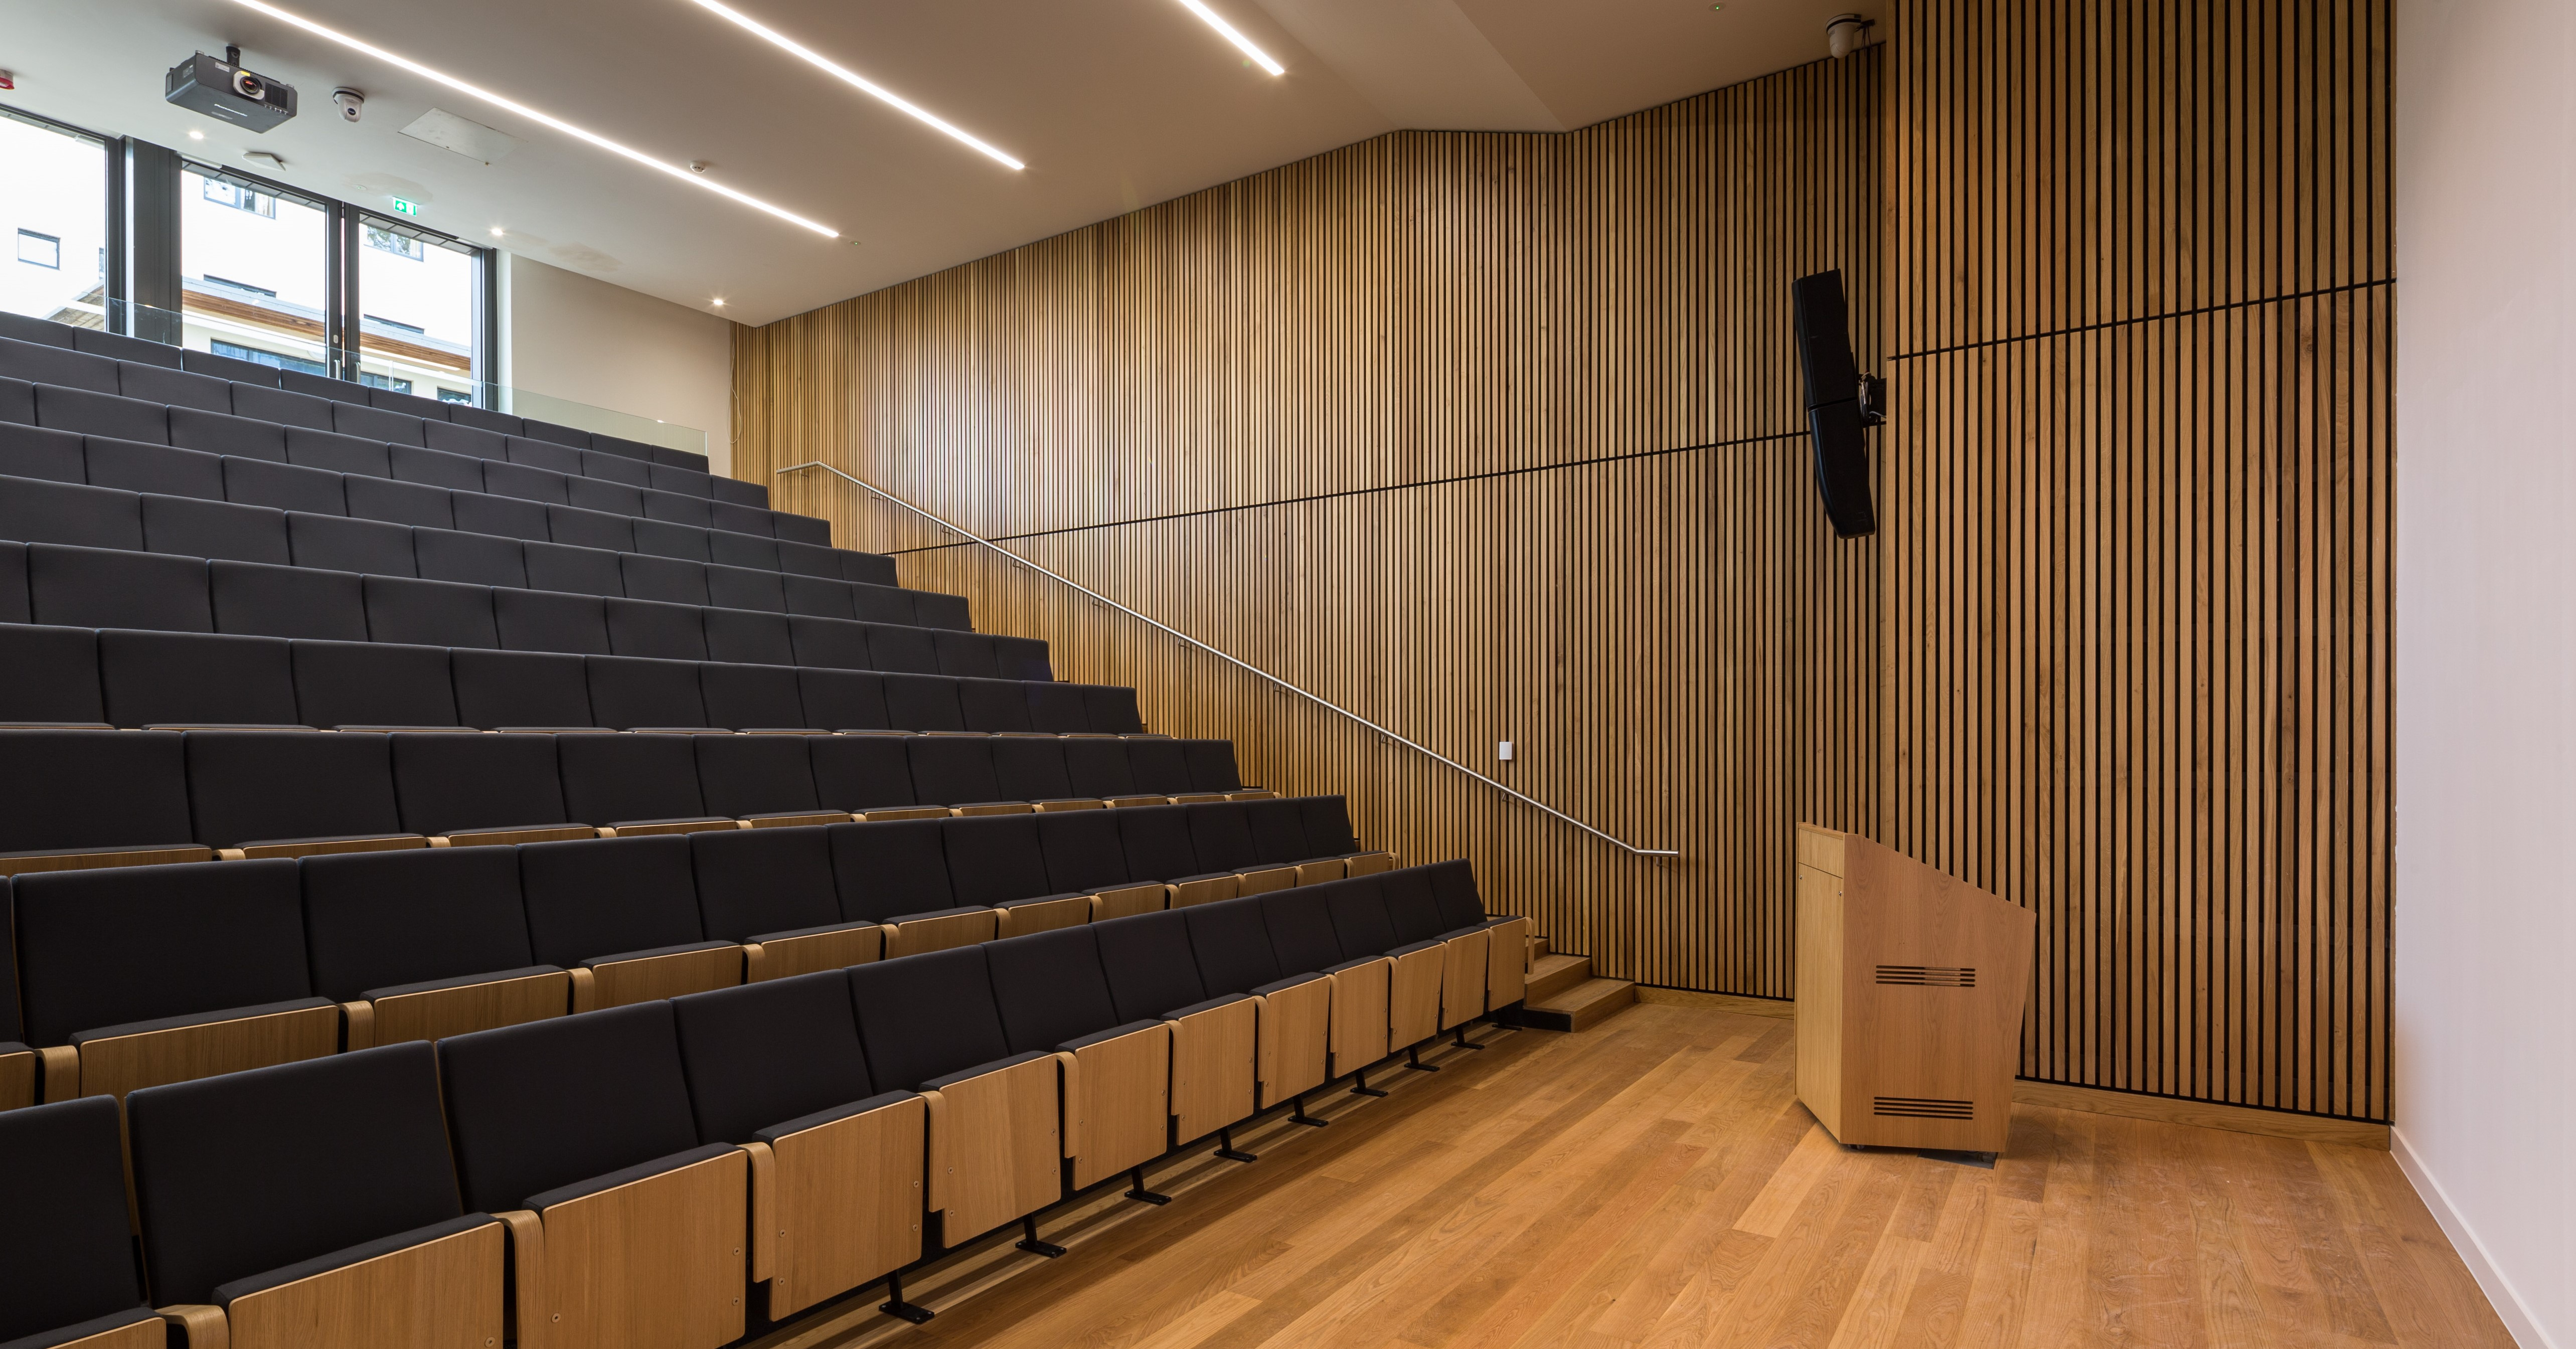 An auditorium with tiered seating.